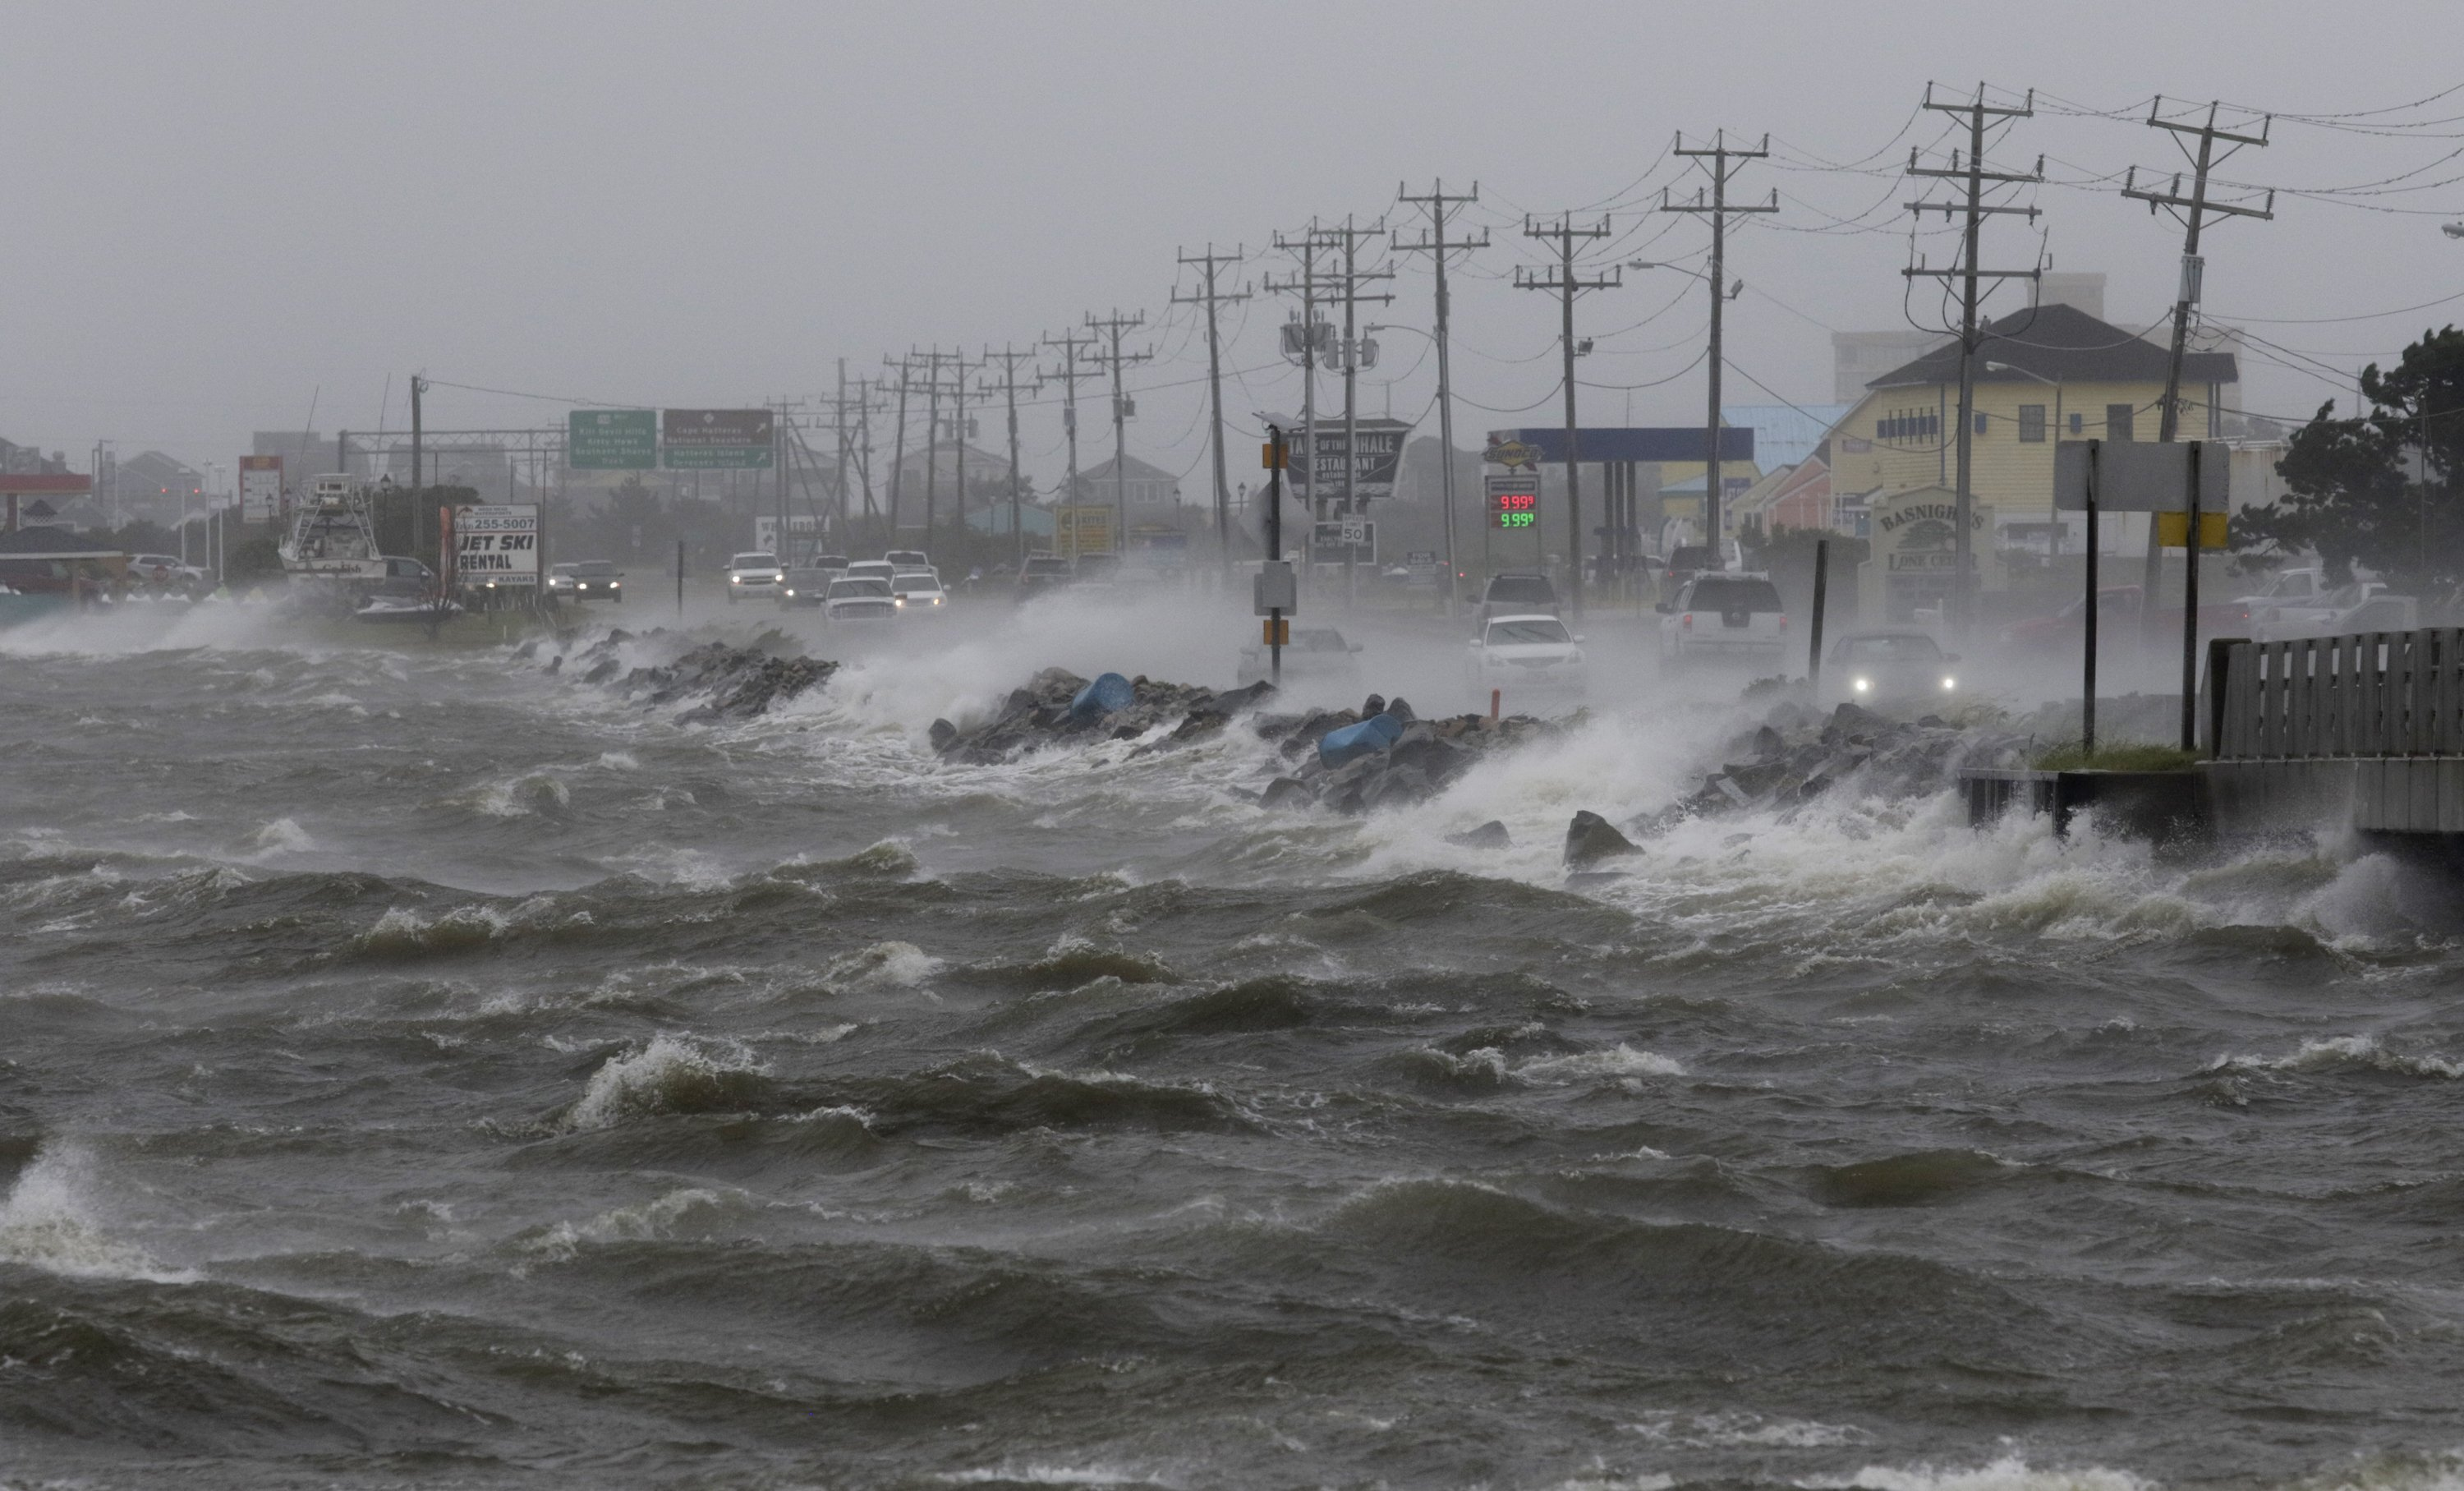 hermine to deliver life threatening surf winds from north